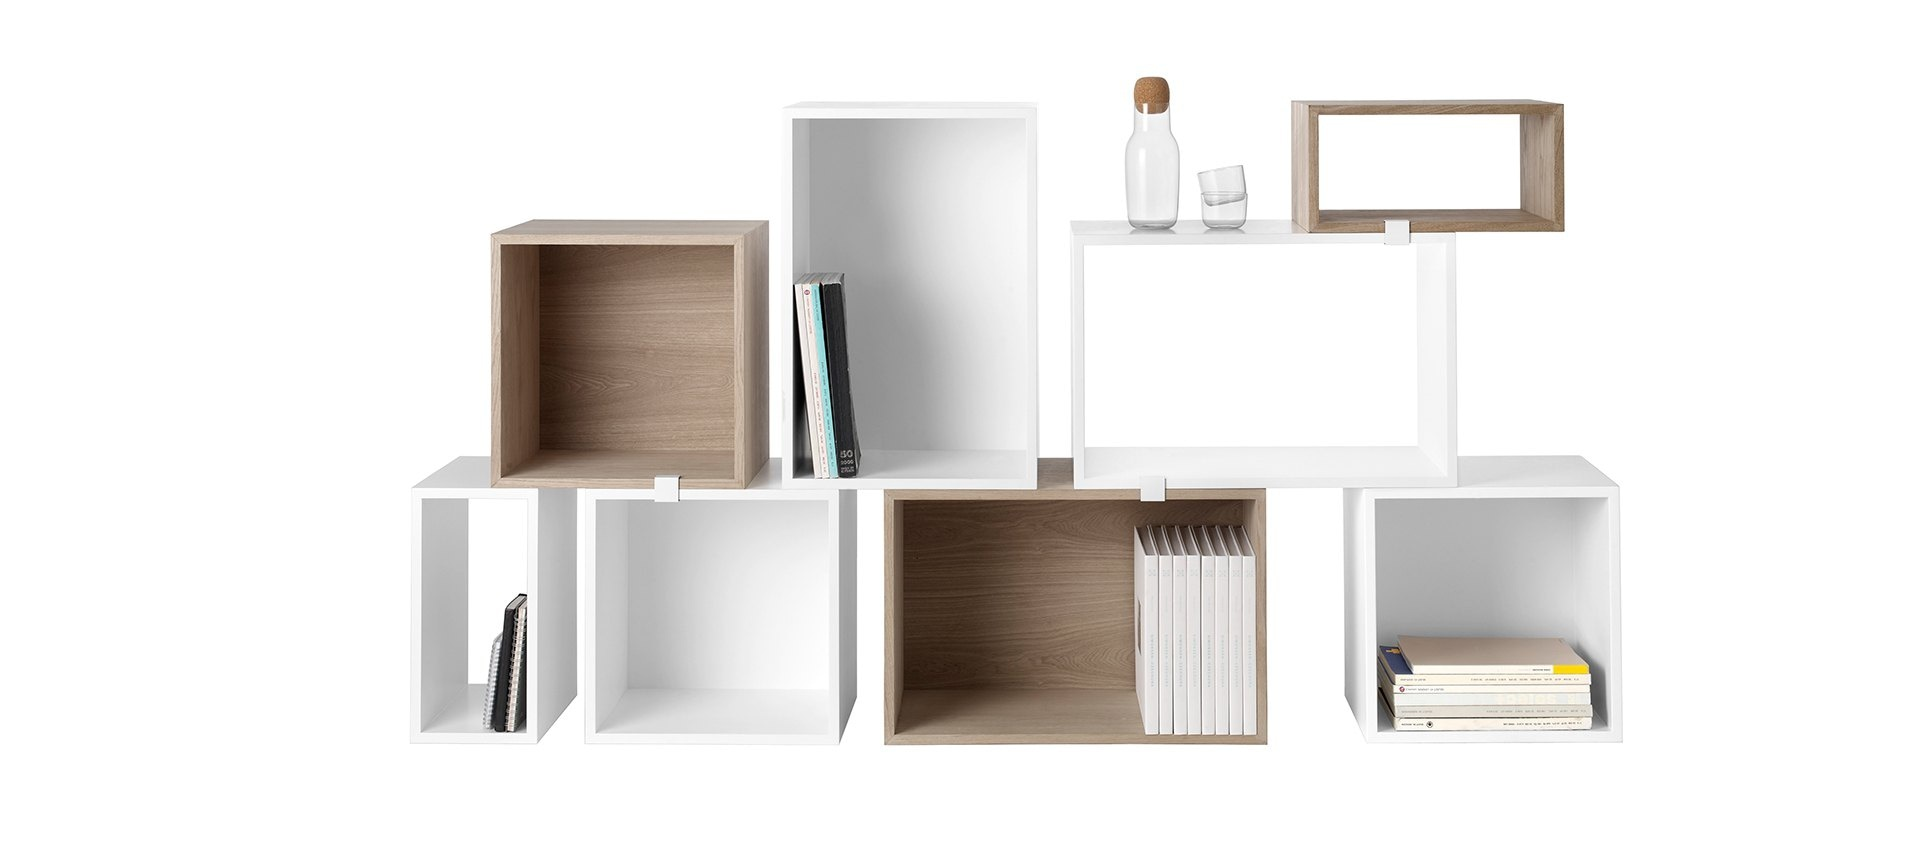 etag re caisson stacked large avec fond muuto blou. Black Bedroom Furniture Sets. Home Design Ideas